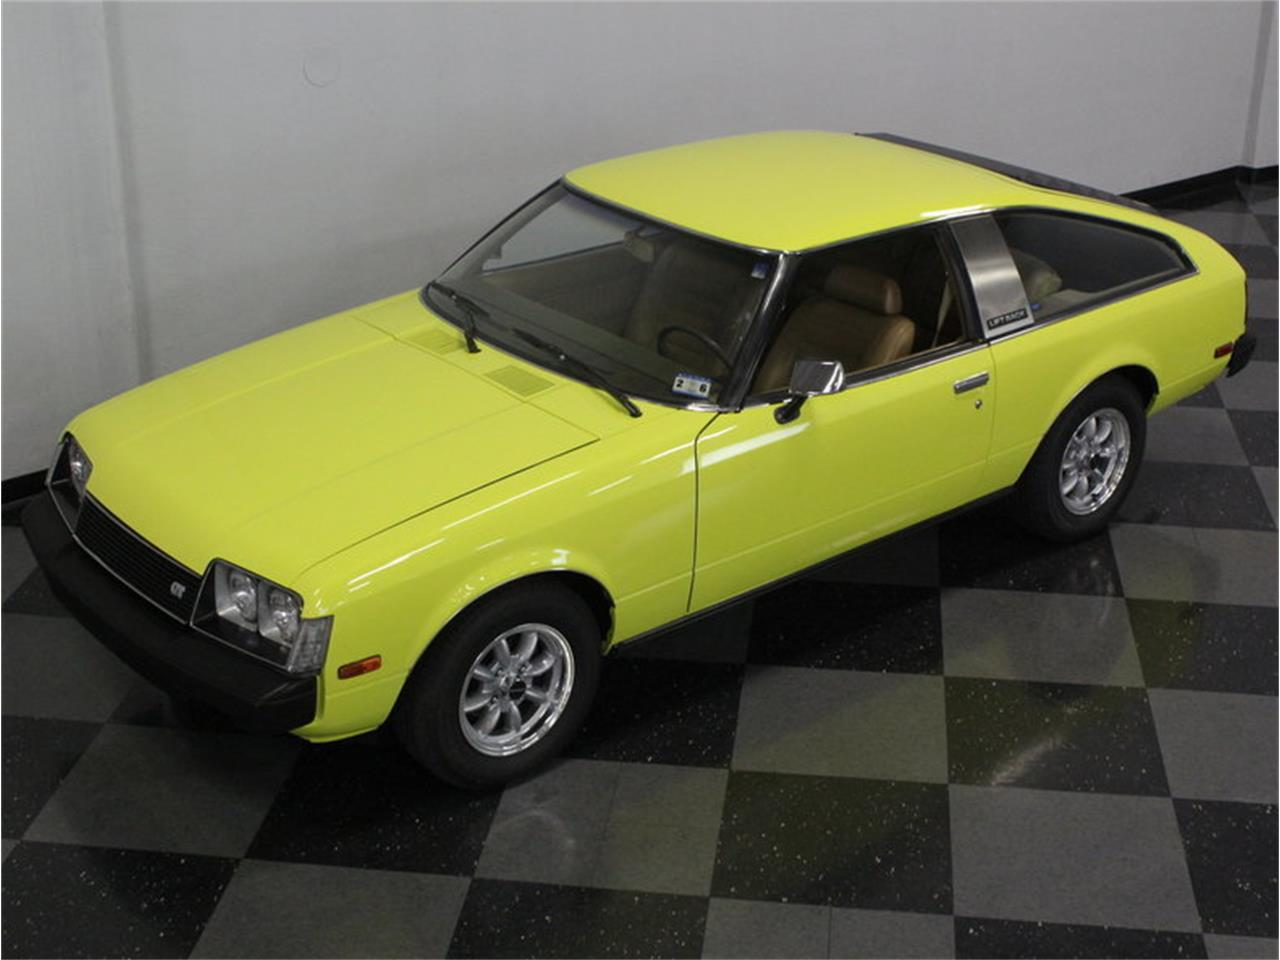 Large Picture of '78 Toyota Celica located in Texas - $9,995.00 Offered by Streetside Classics - Dallas / Fort Worth - F6ZC